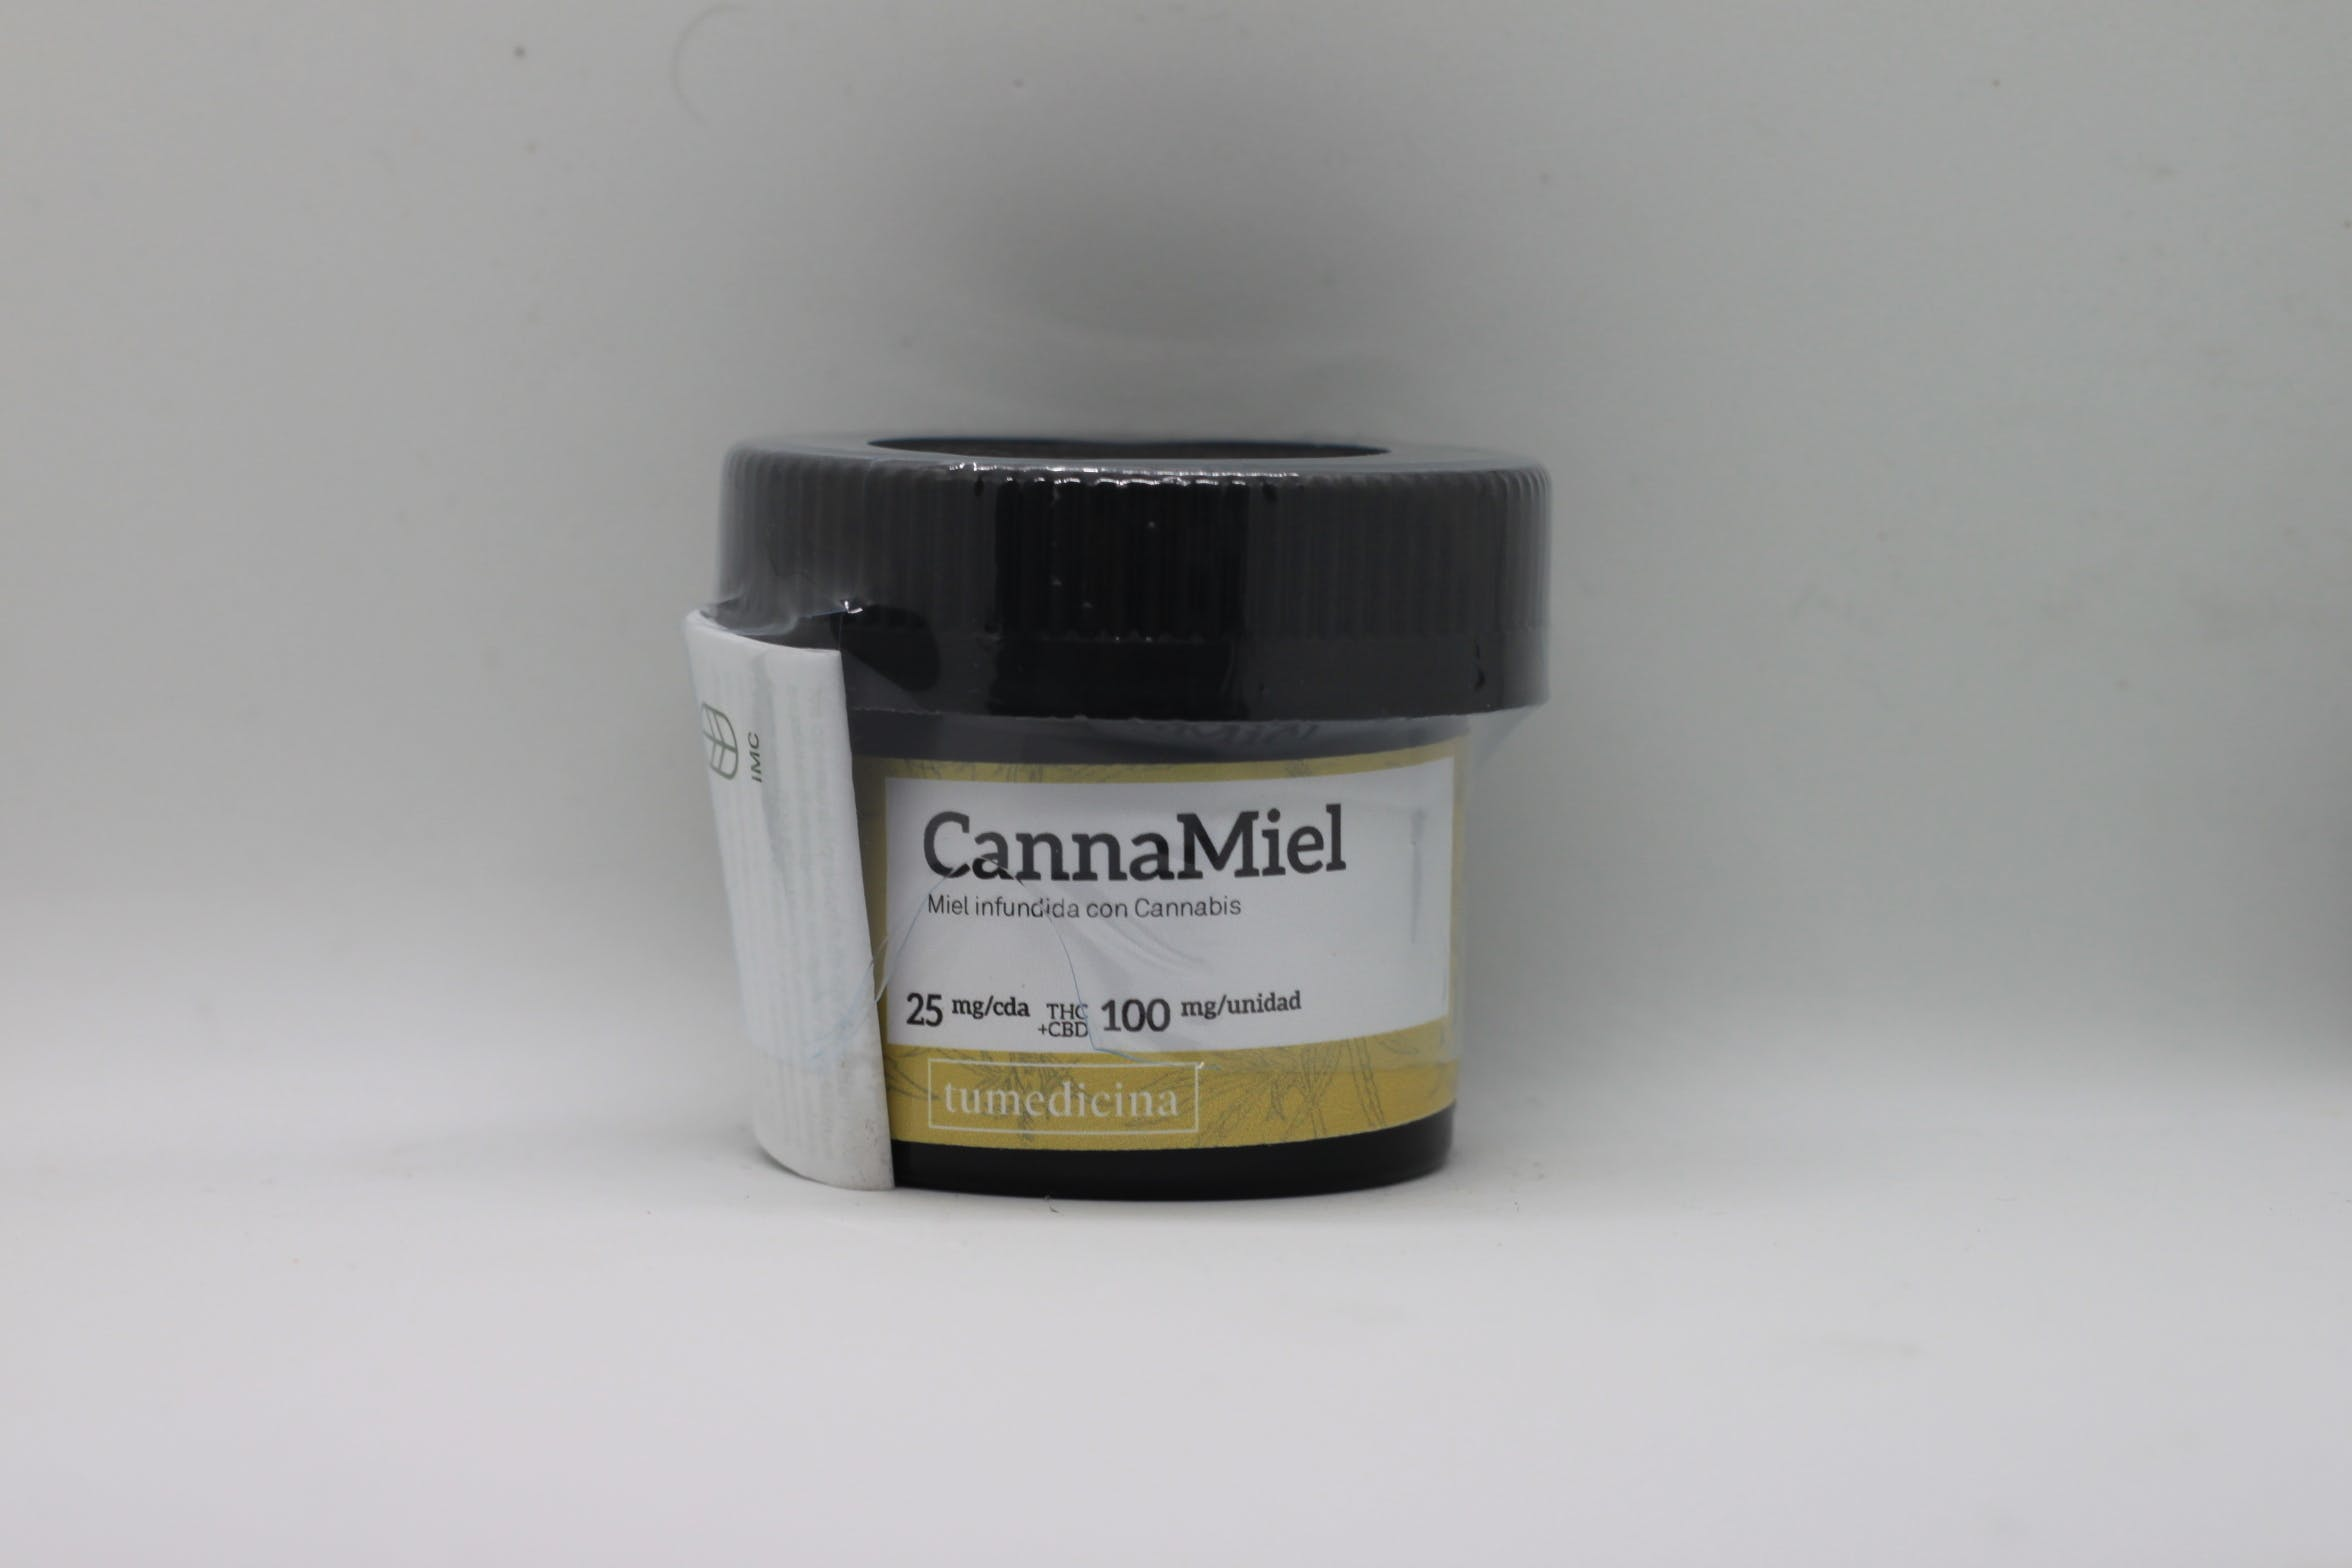 edible-cannamiel-with-cbd-25mg-tbsp-100mg-2oz